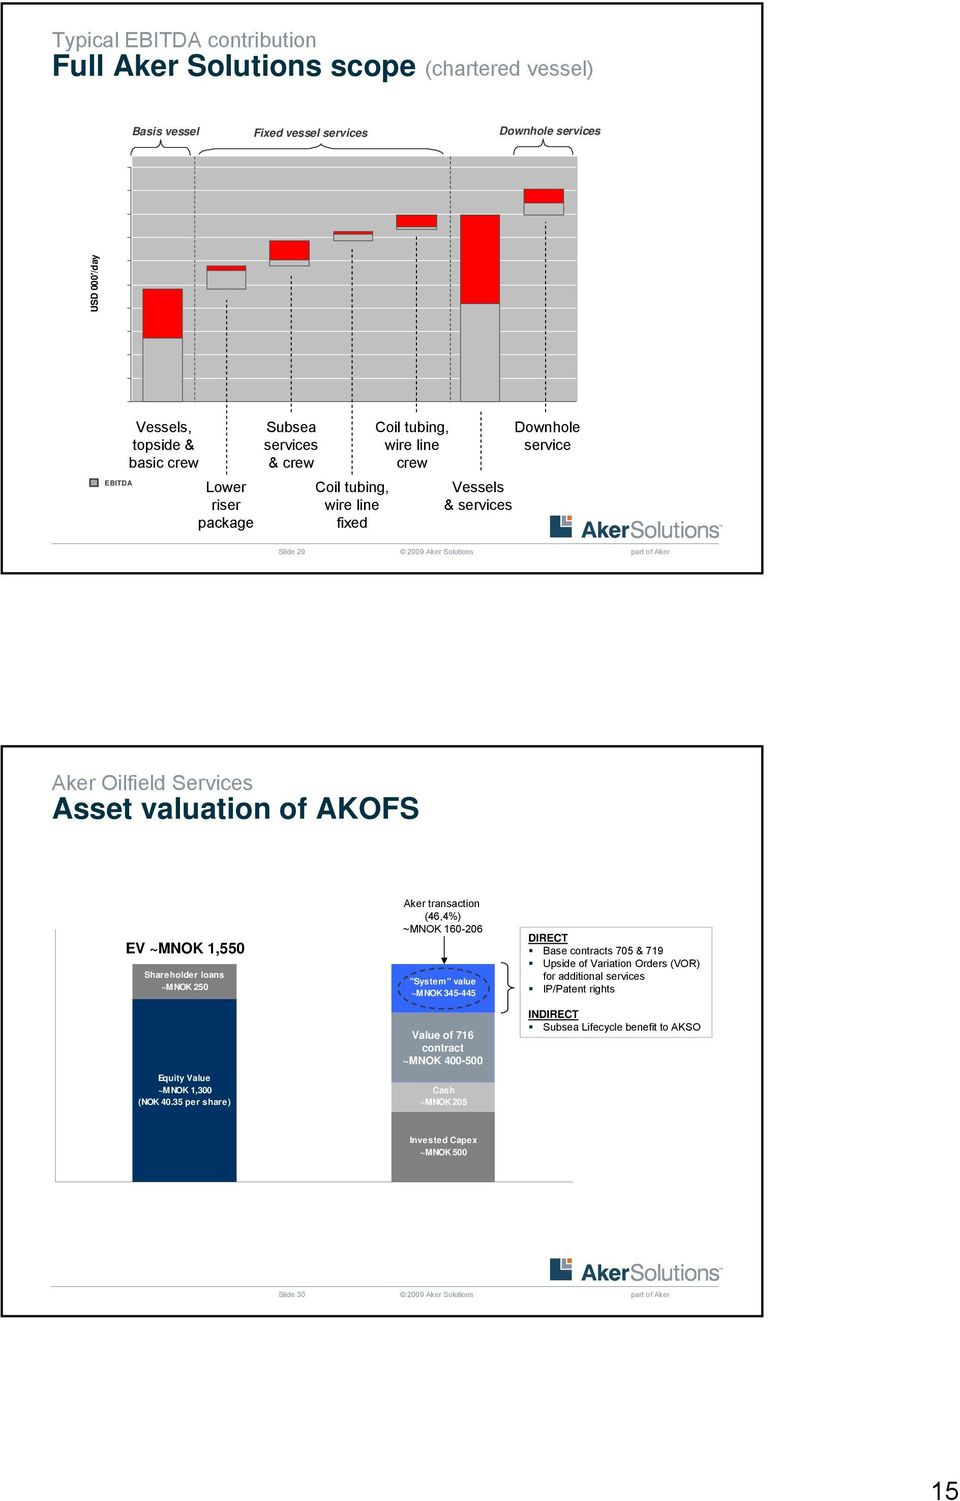 Vessel / Services Vessels & services Downhole services* Downhole service Slide 29 Oilfield Services Asset valuation of AKOFS EV ~MNOK 1,550 Shareholder loans ~MNOK 250 Equity Value ~MNOK 1,300 (NOK